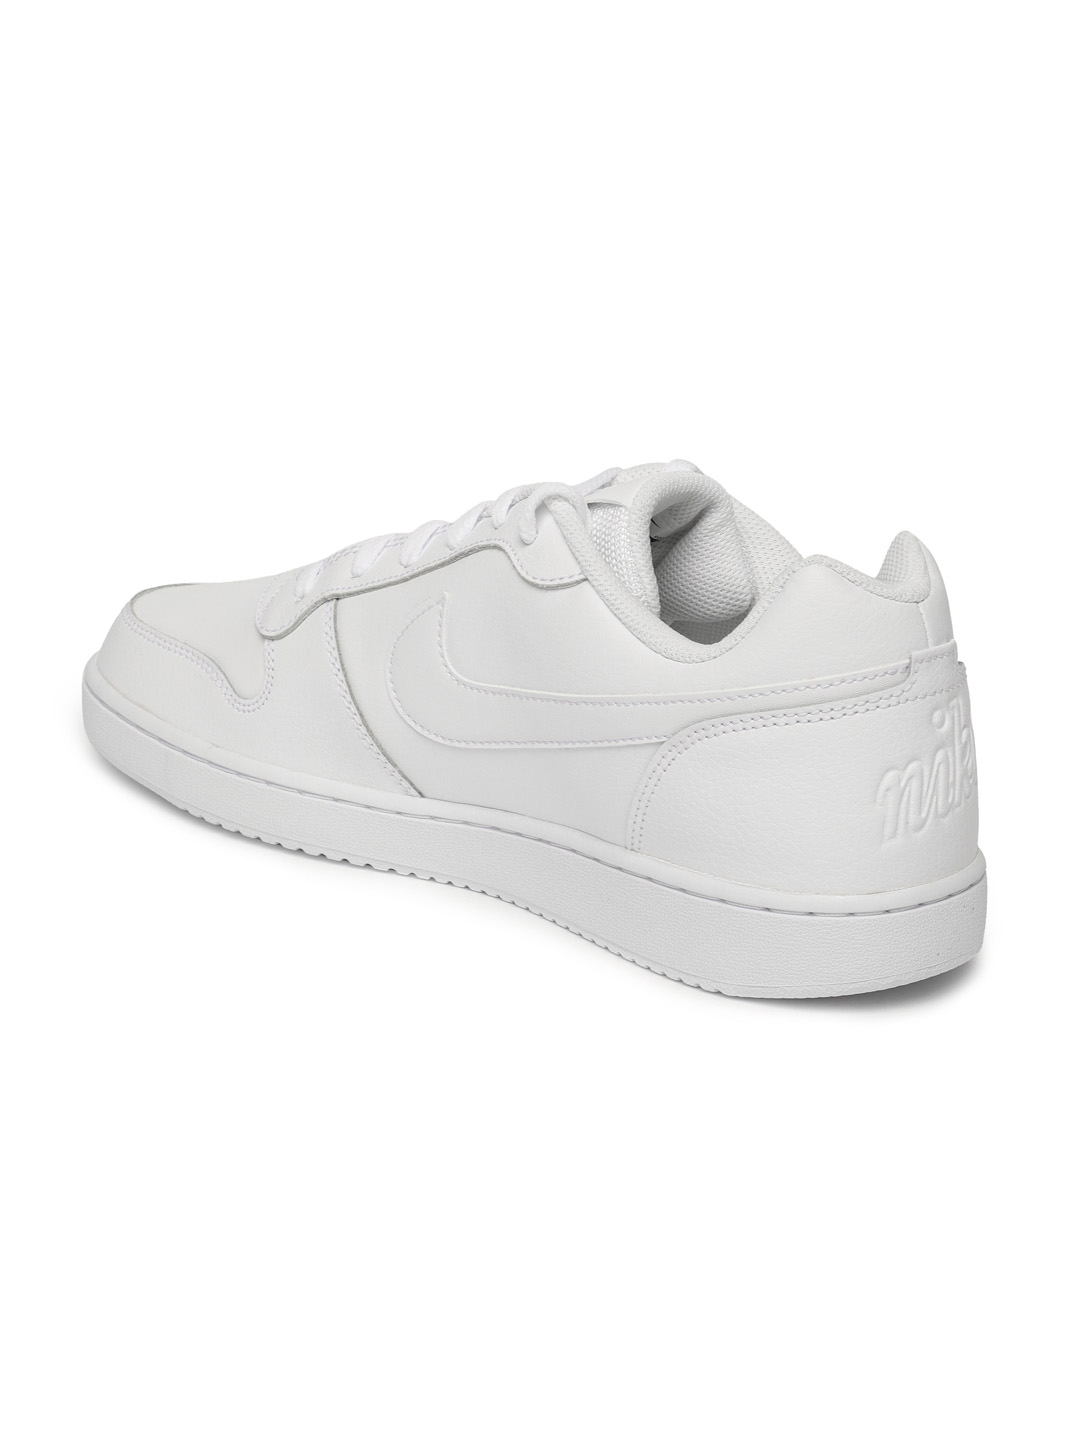 1169e63e3b Buy Nike Men White Leather Ebernon Low Sneakers - Casual Shoes for ...